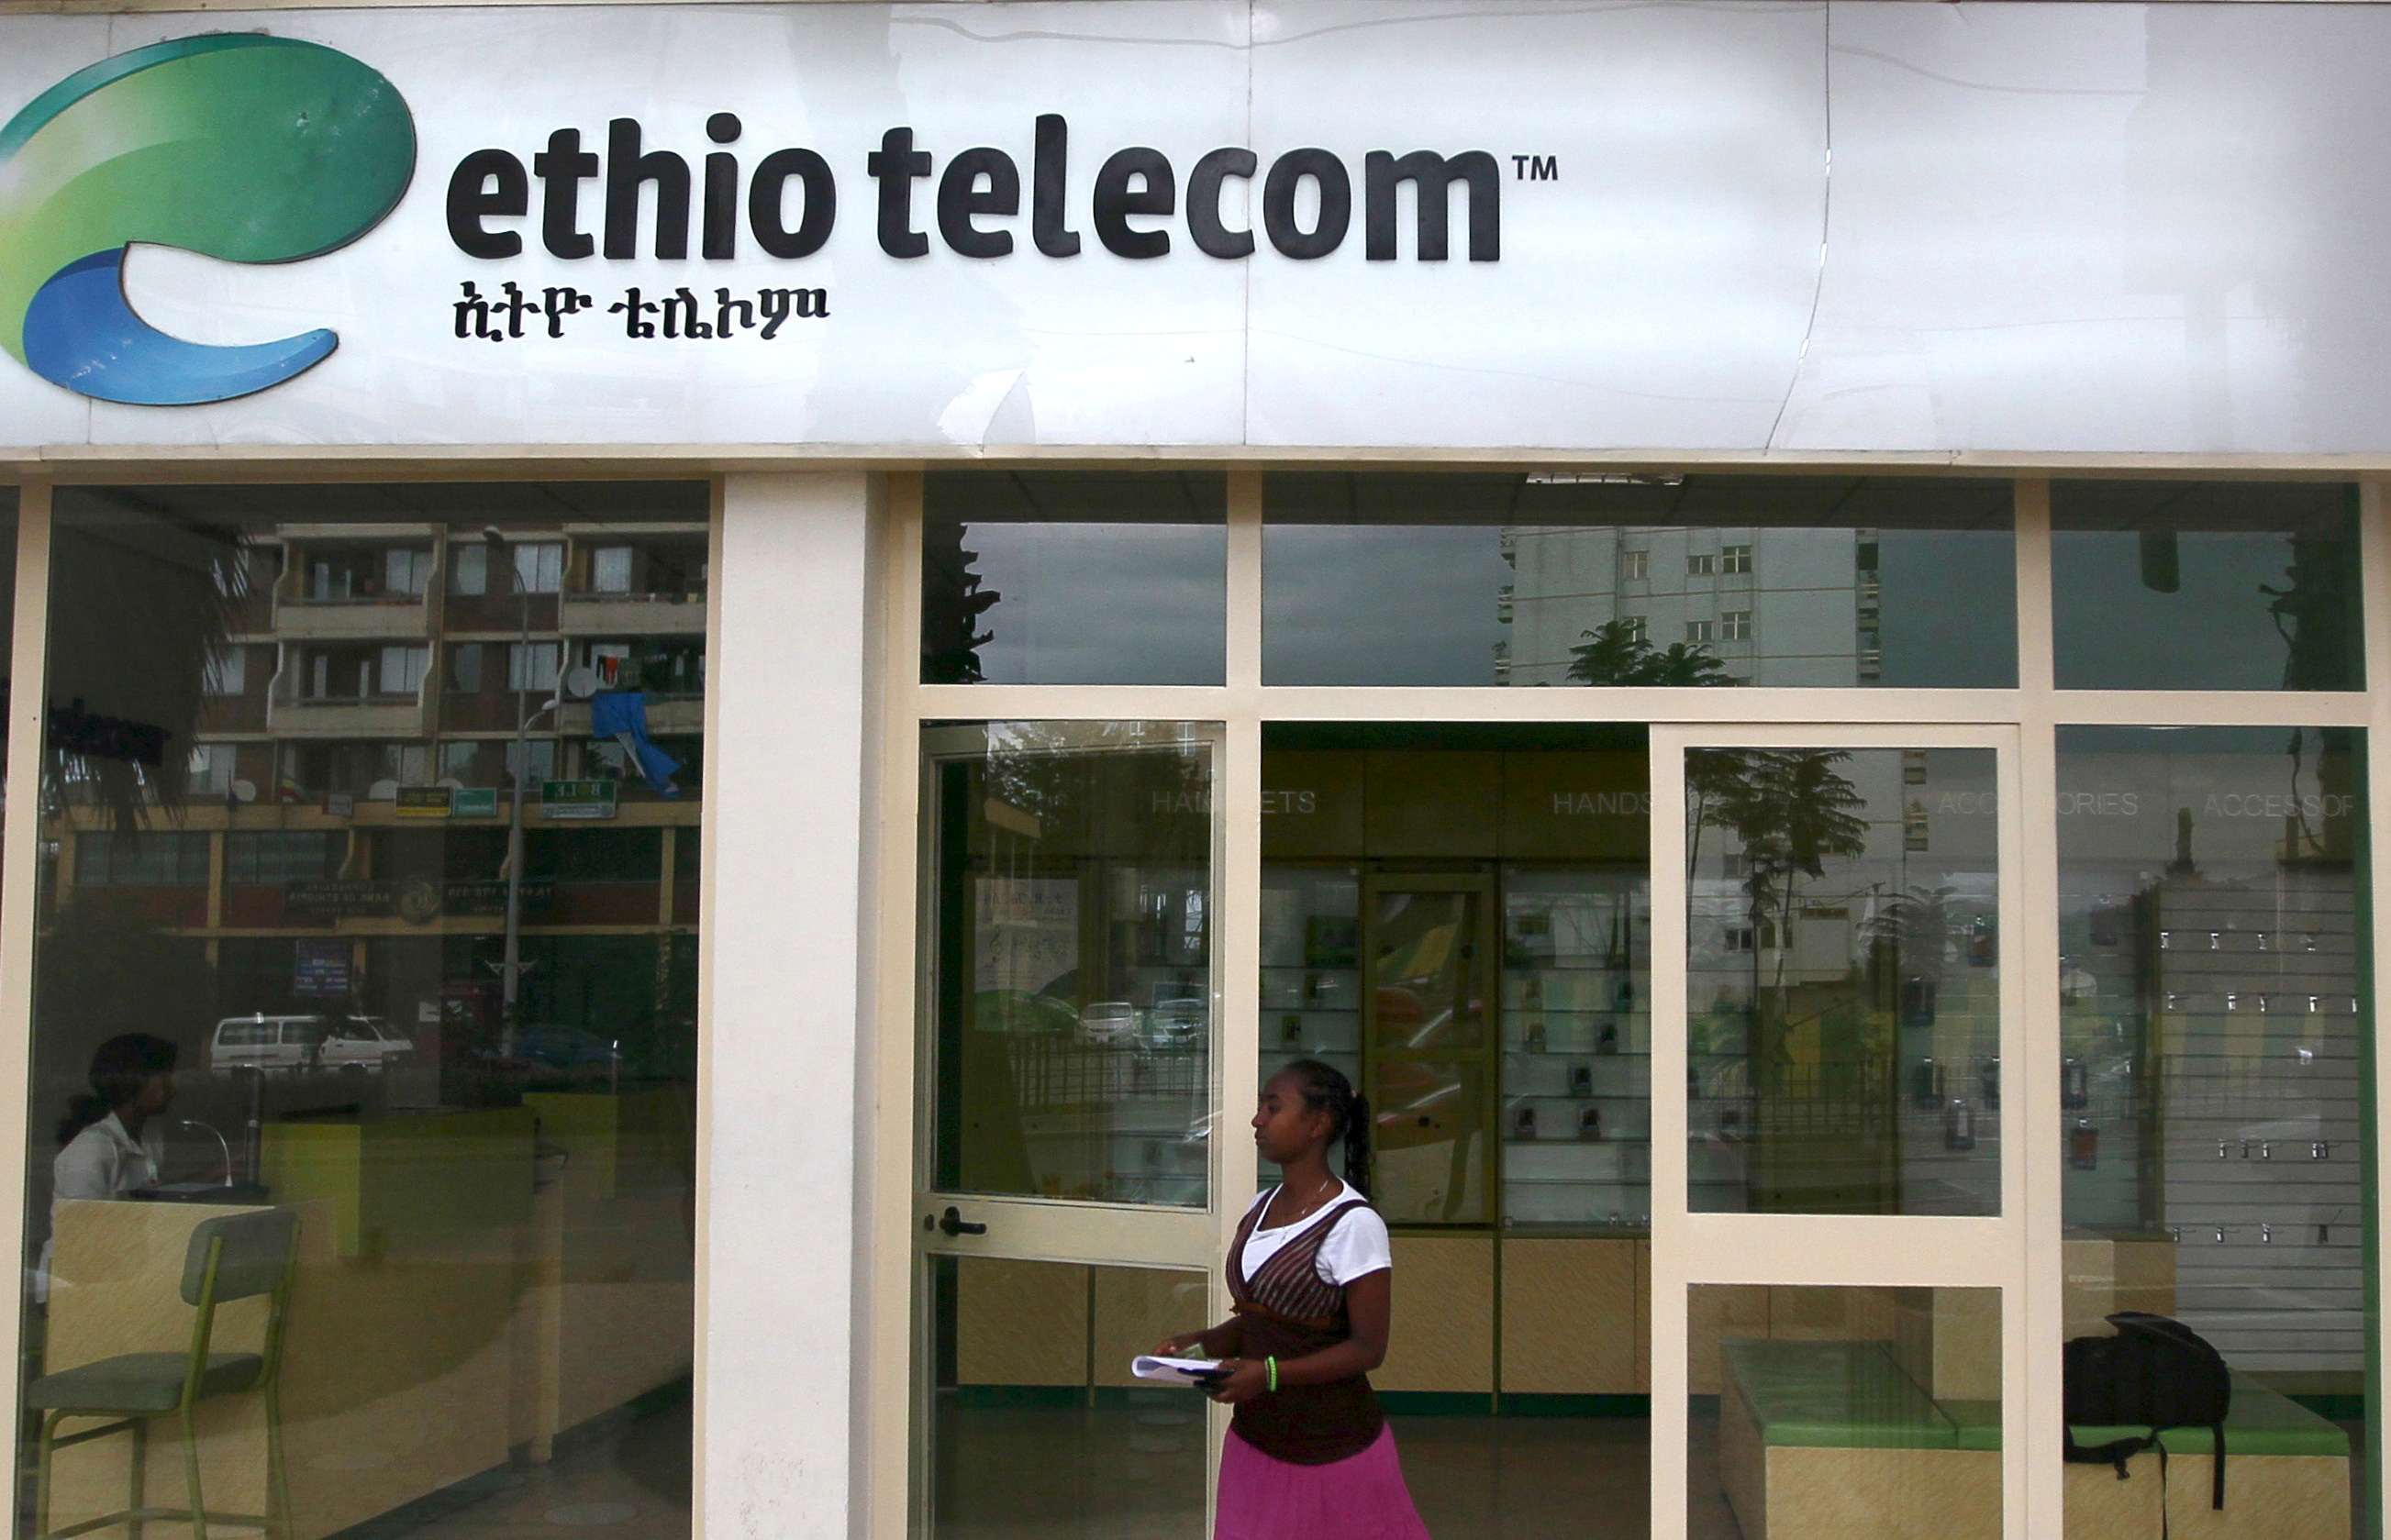 Internet blackout hits Ethiopia's pocket, but not seen deterring telecoms investors